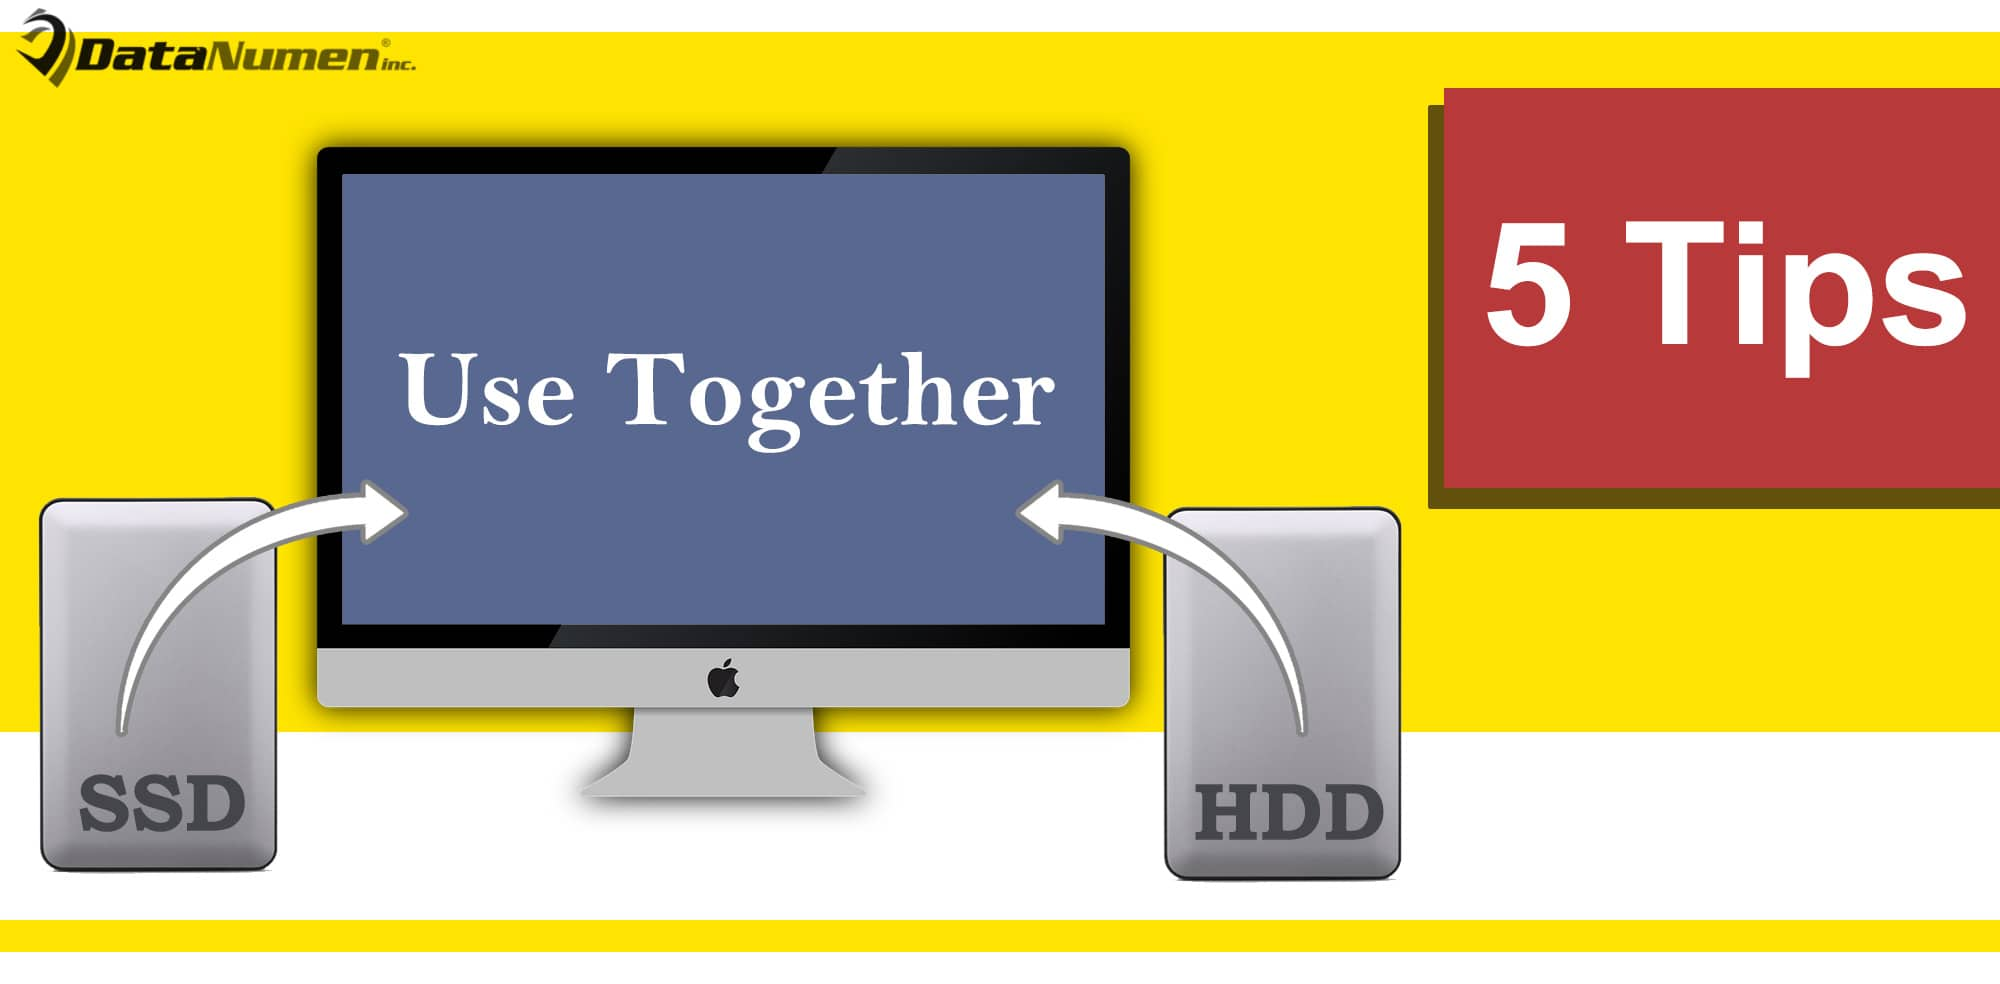 5 Effective Tips to Use SSD & HDD Together on One Computer